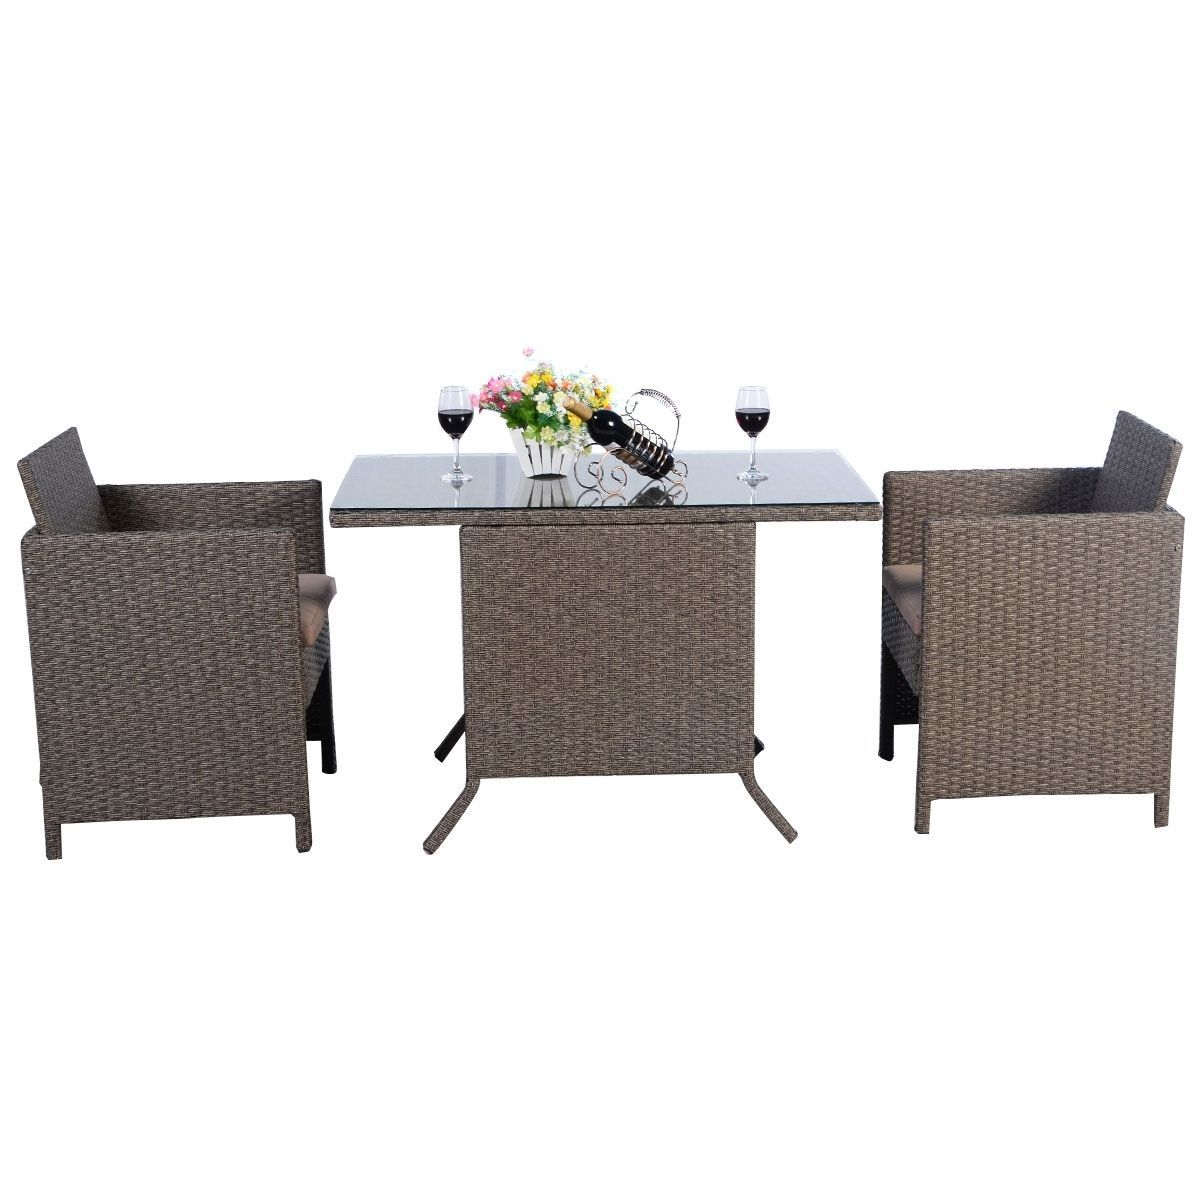 Garden Rattan Set 3pcs Table Chairs Cushioned Outdoor Patio Small Dining Set  image 2